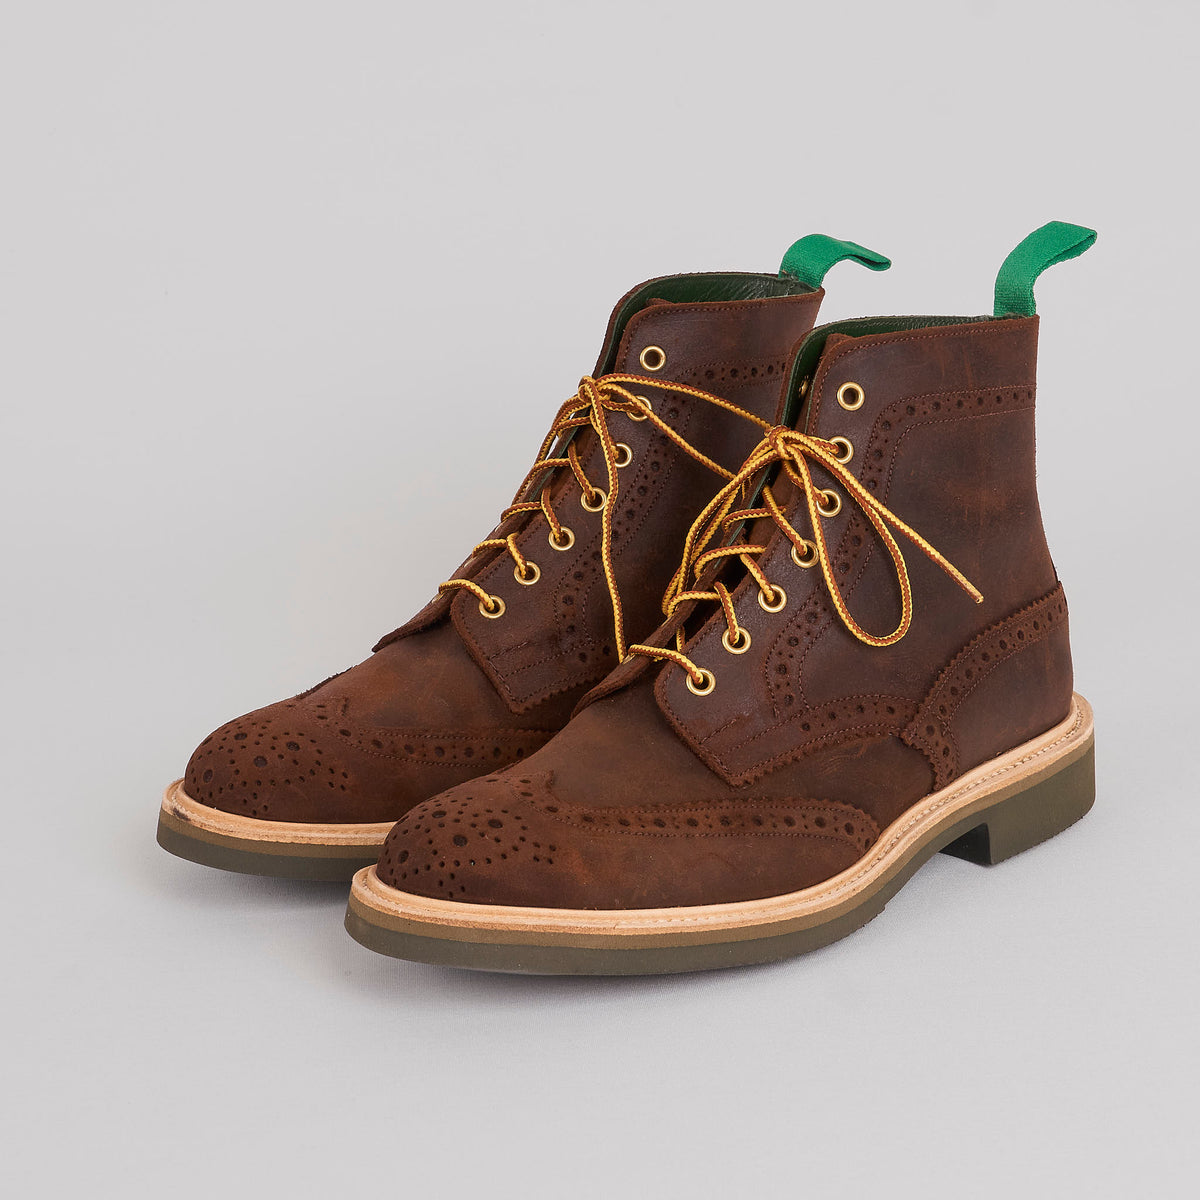 Trickers Suede Brogue Boot